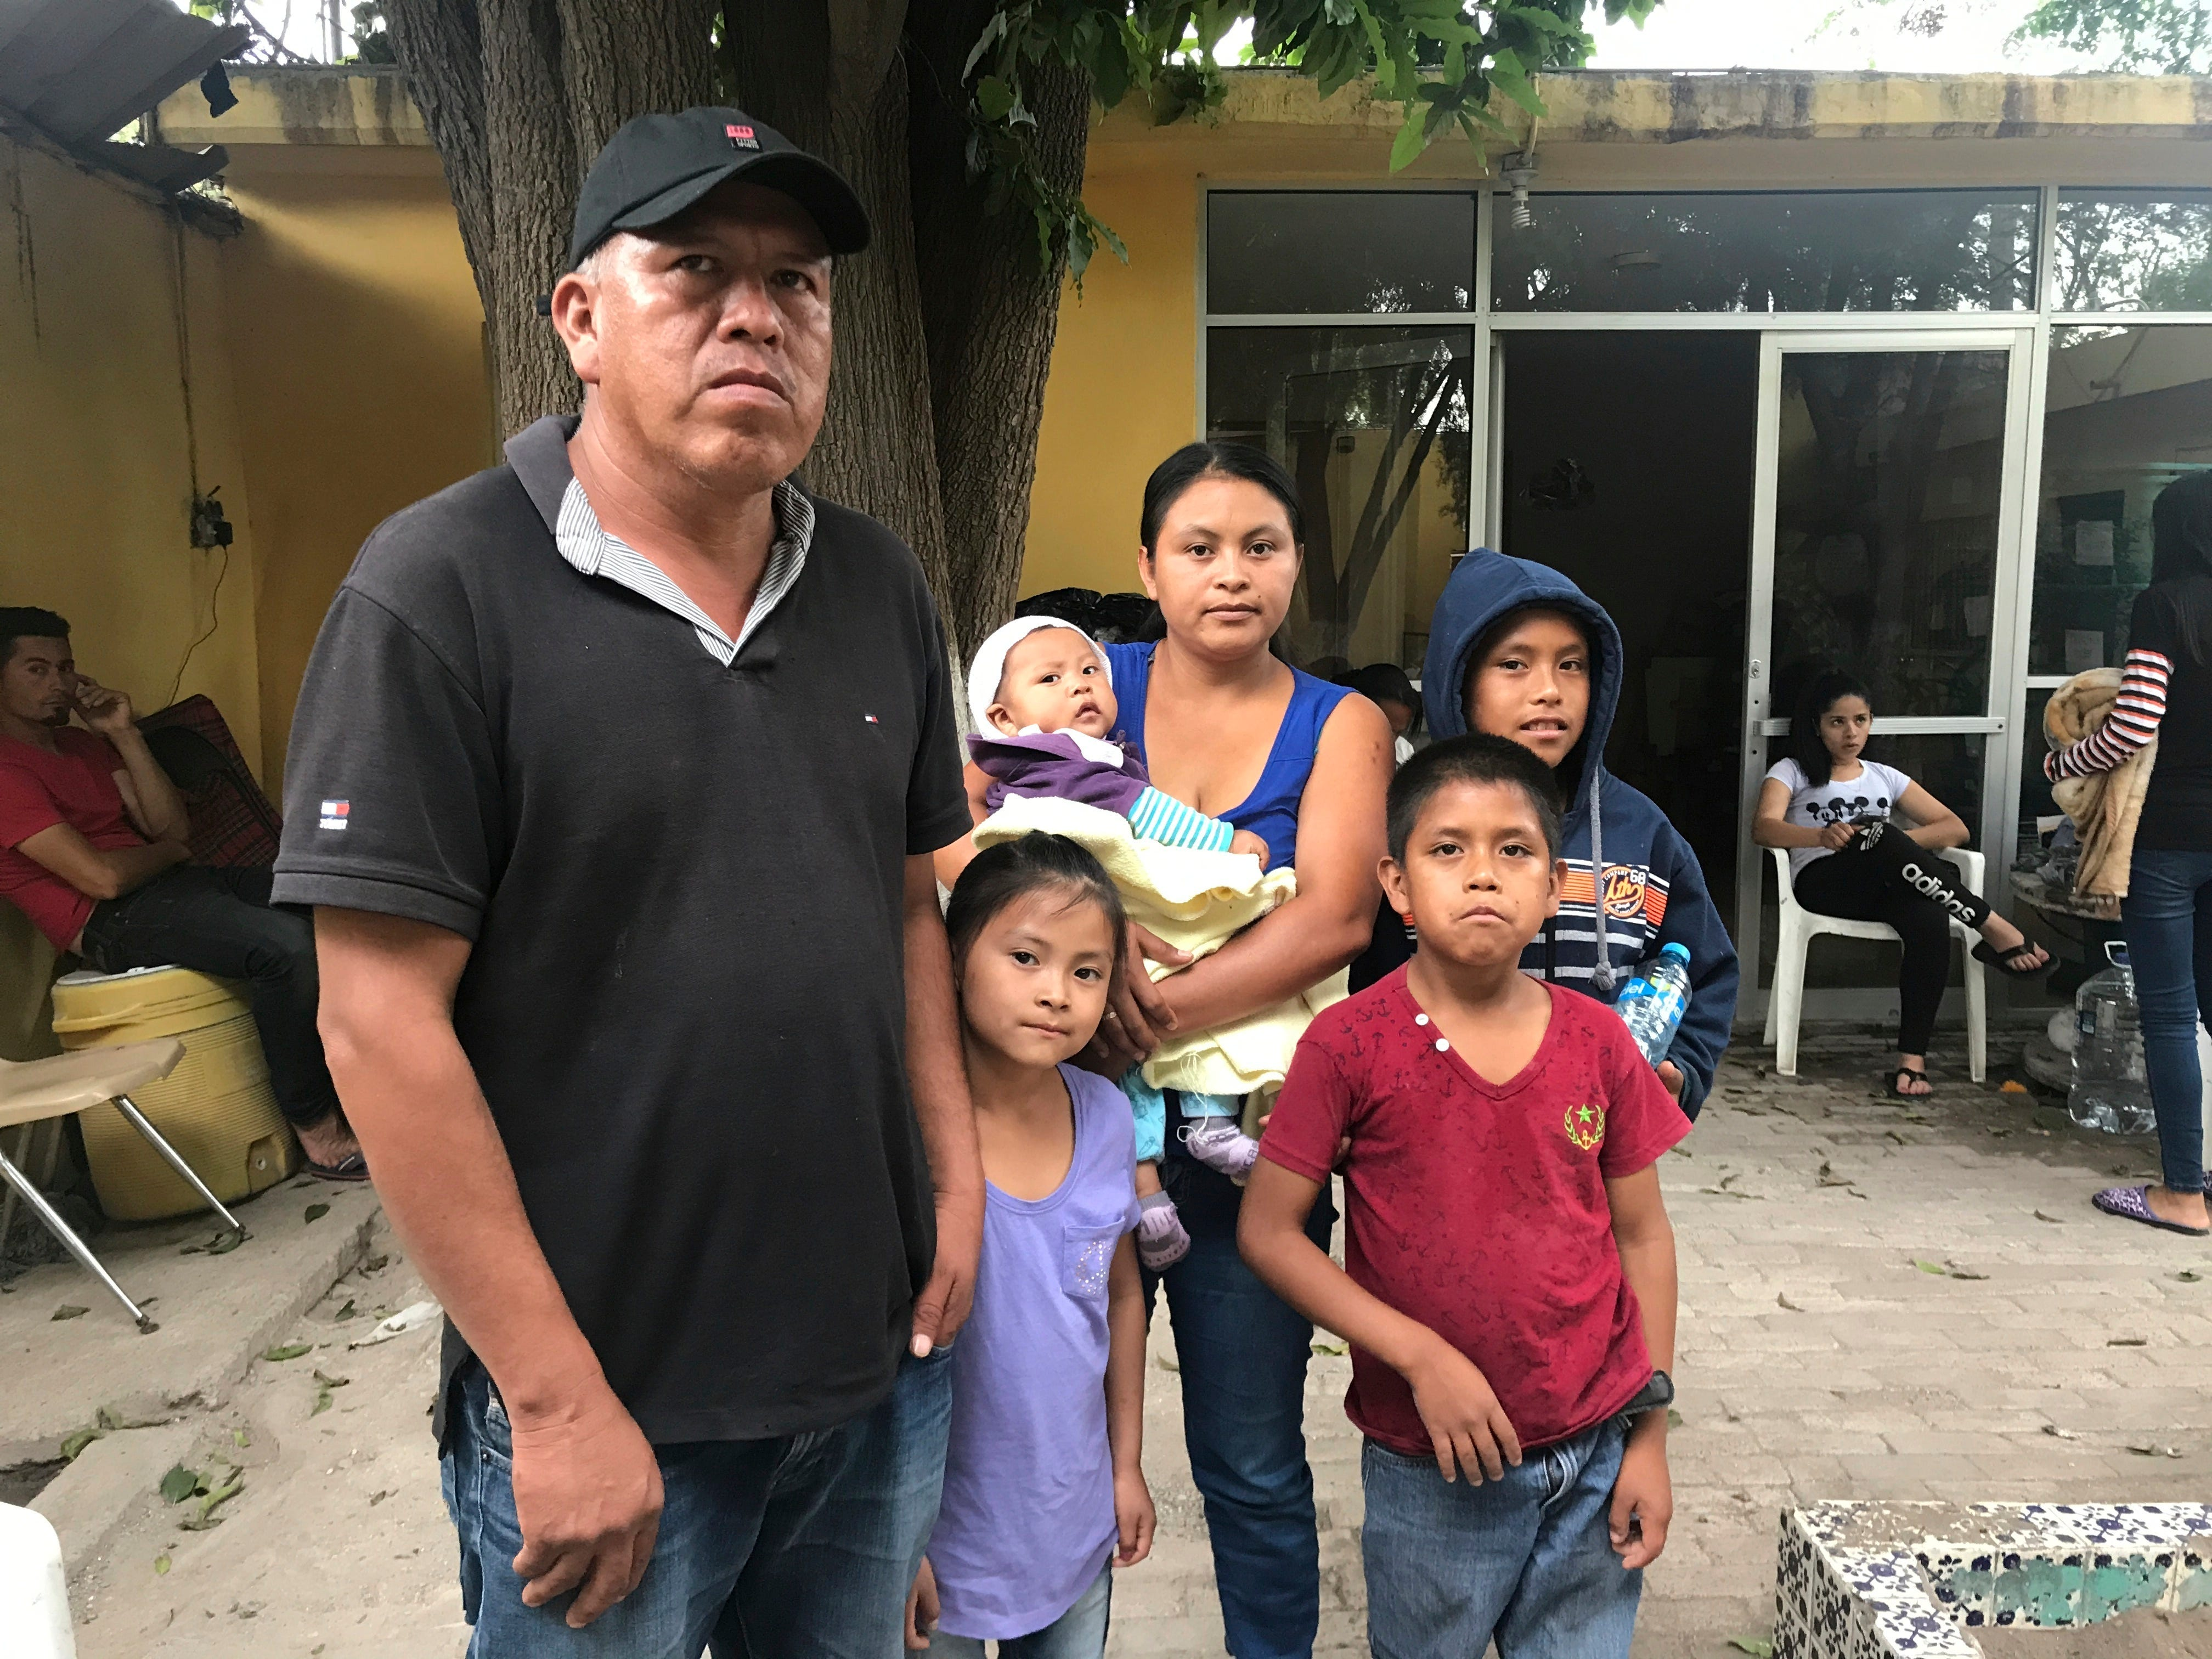 Bernardino Blanco Romero, from Guerrero, Mexico, stands with his wife, Consuelo Salgado Cruz, and four children at a shelter in Piedras Negras, Mexico, as they seek asylum in the U.S. Blanco said he chose to go to Piedras Negras because it is not violent.